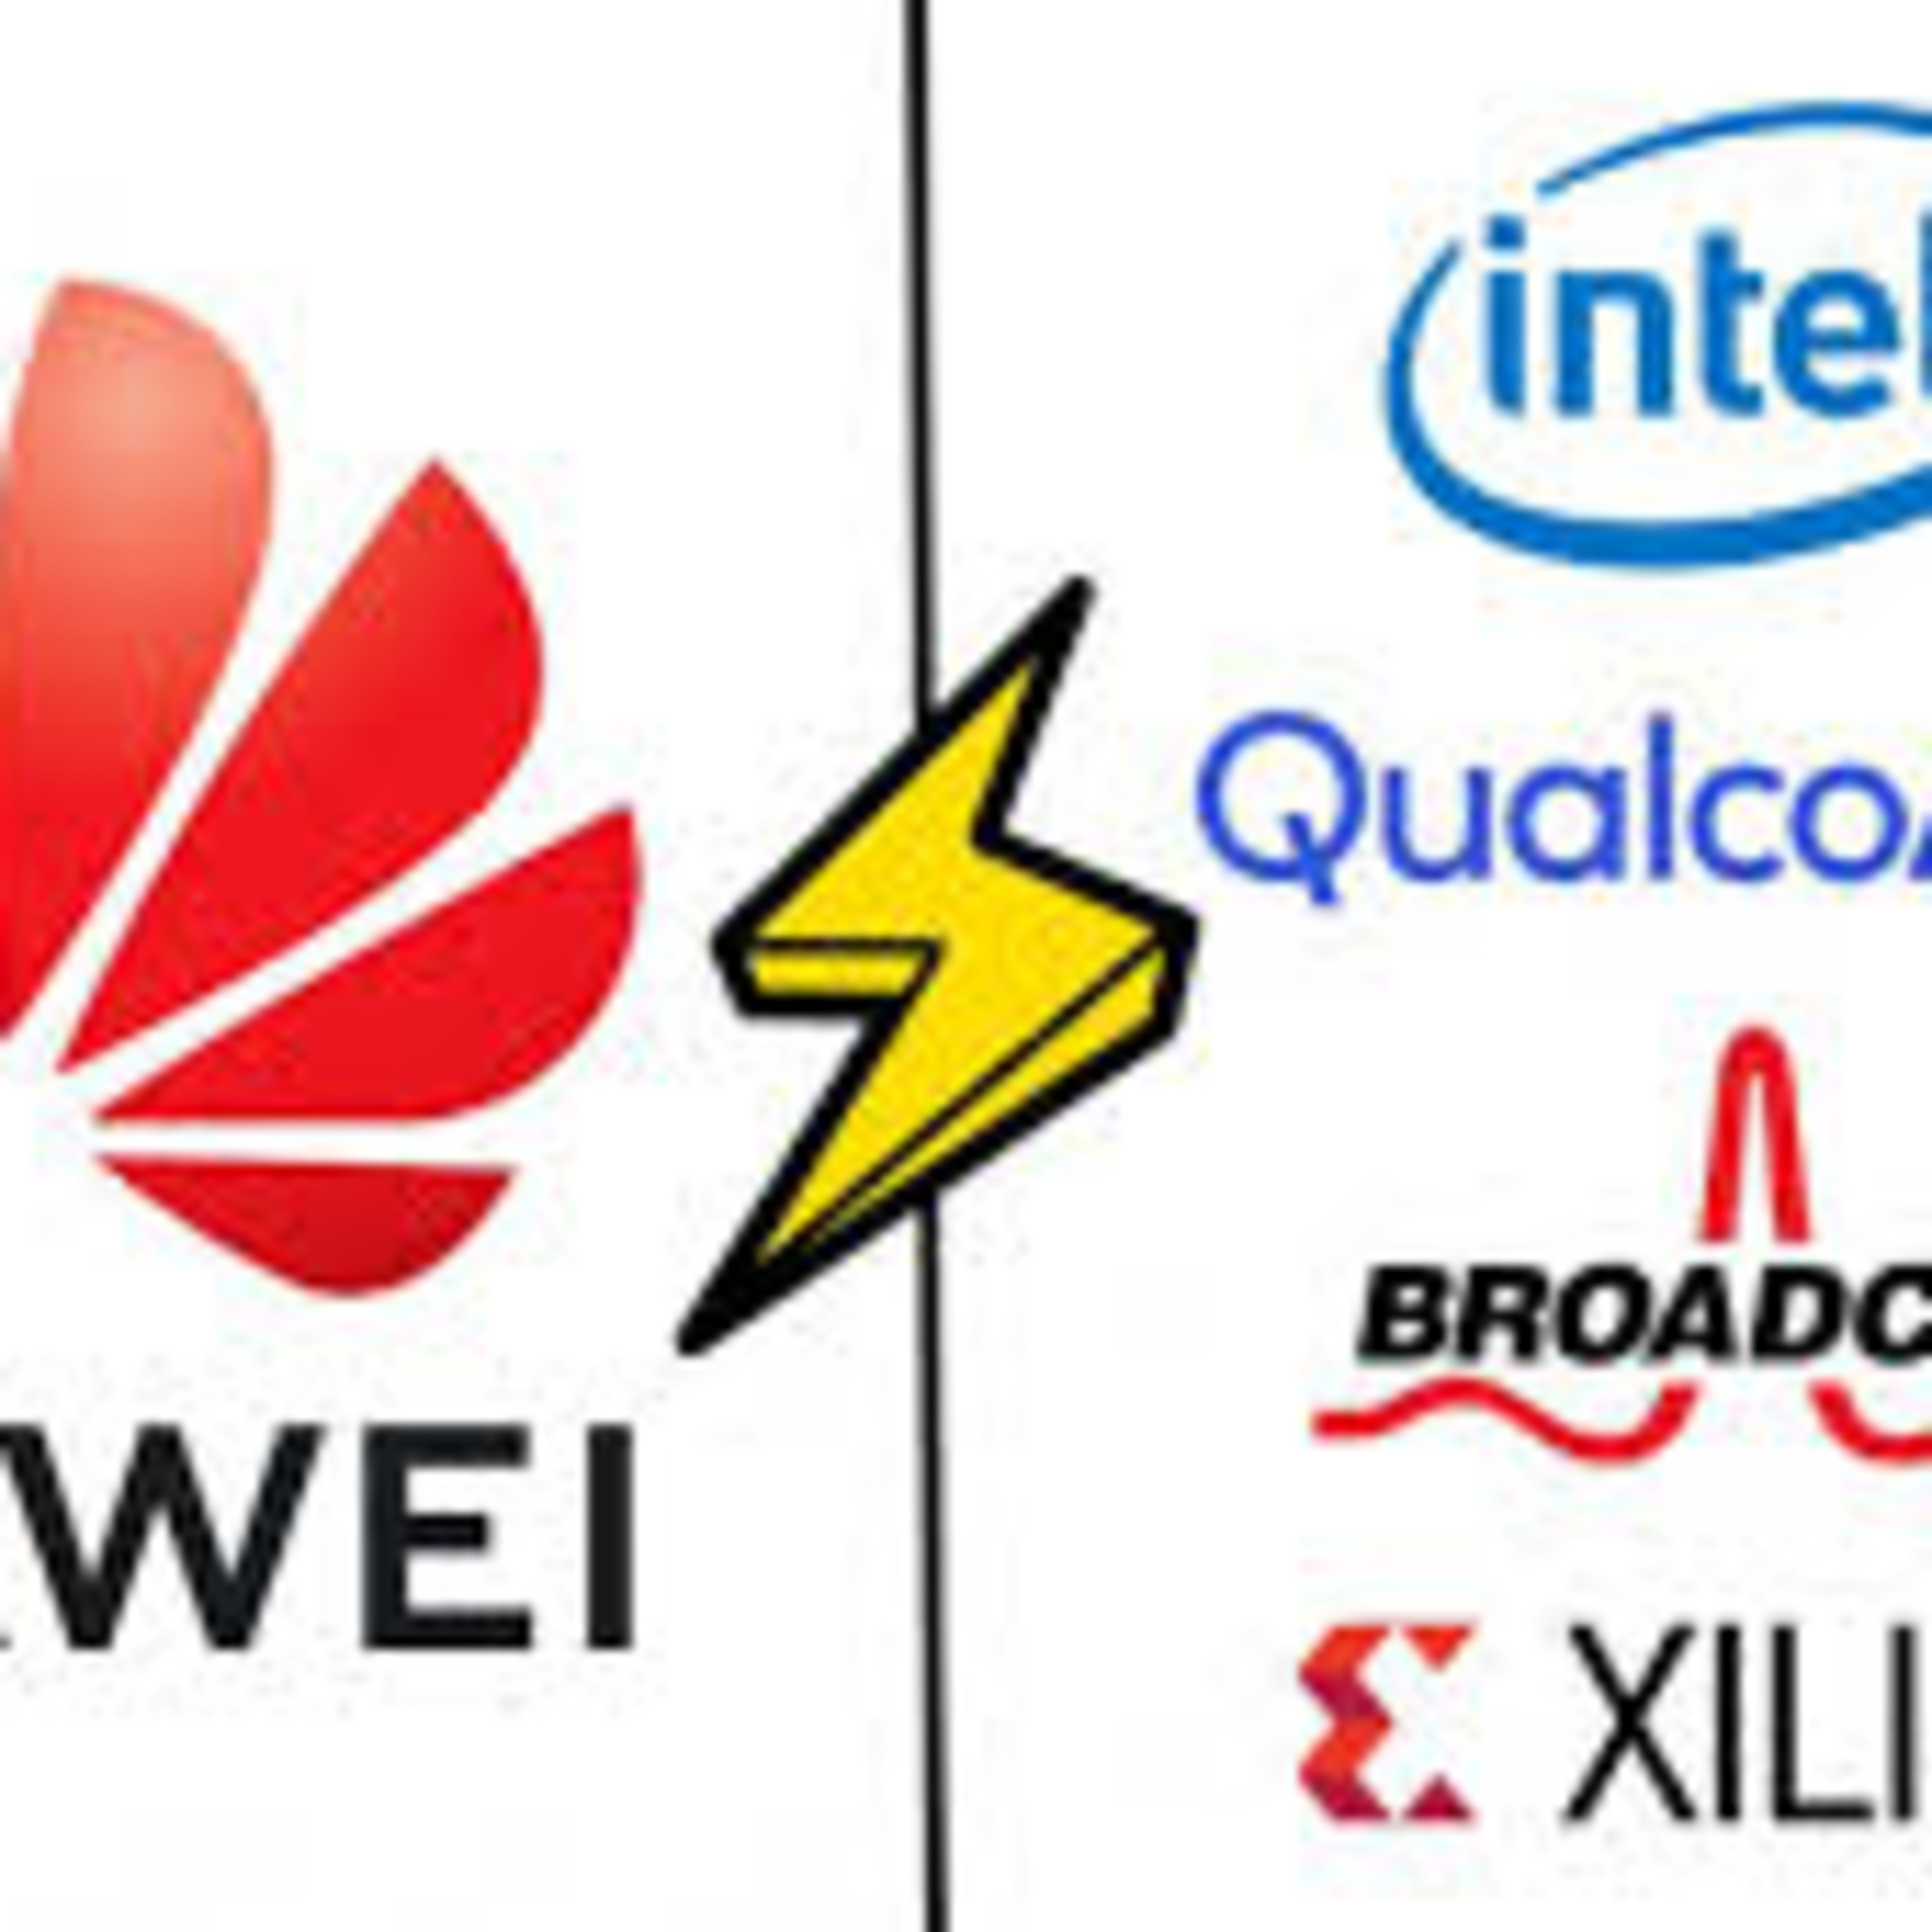 Huawei Vs silicon-valley: A quoi jouent-ils ?